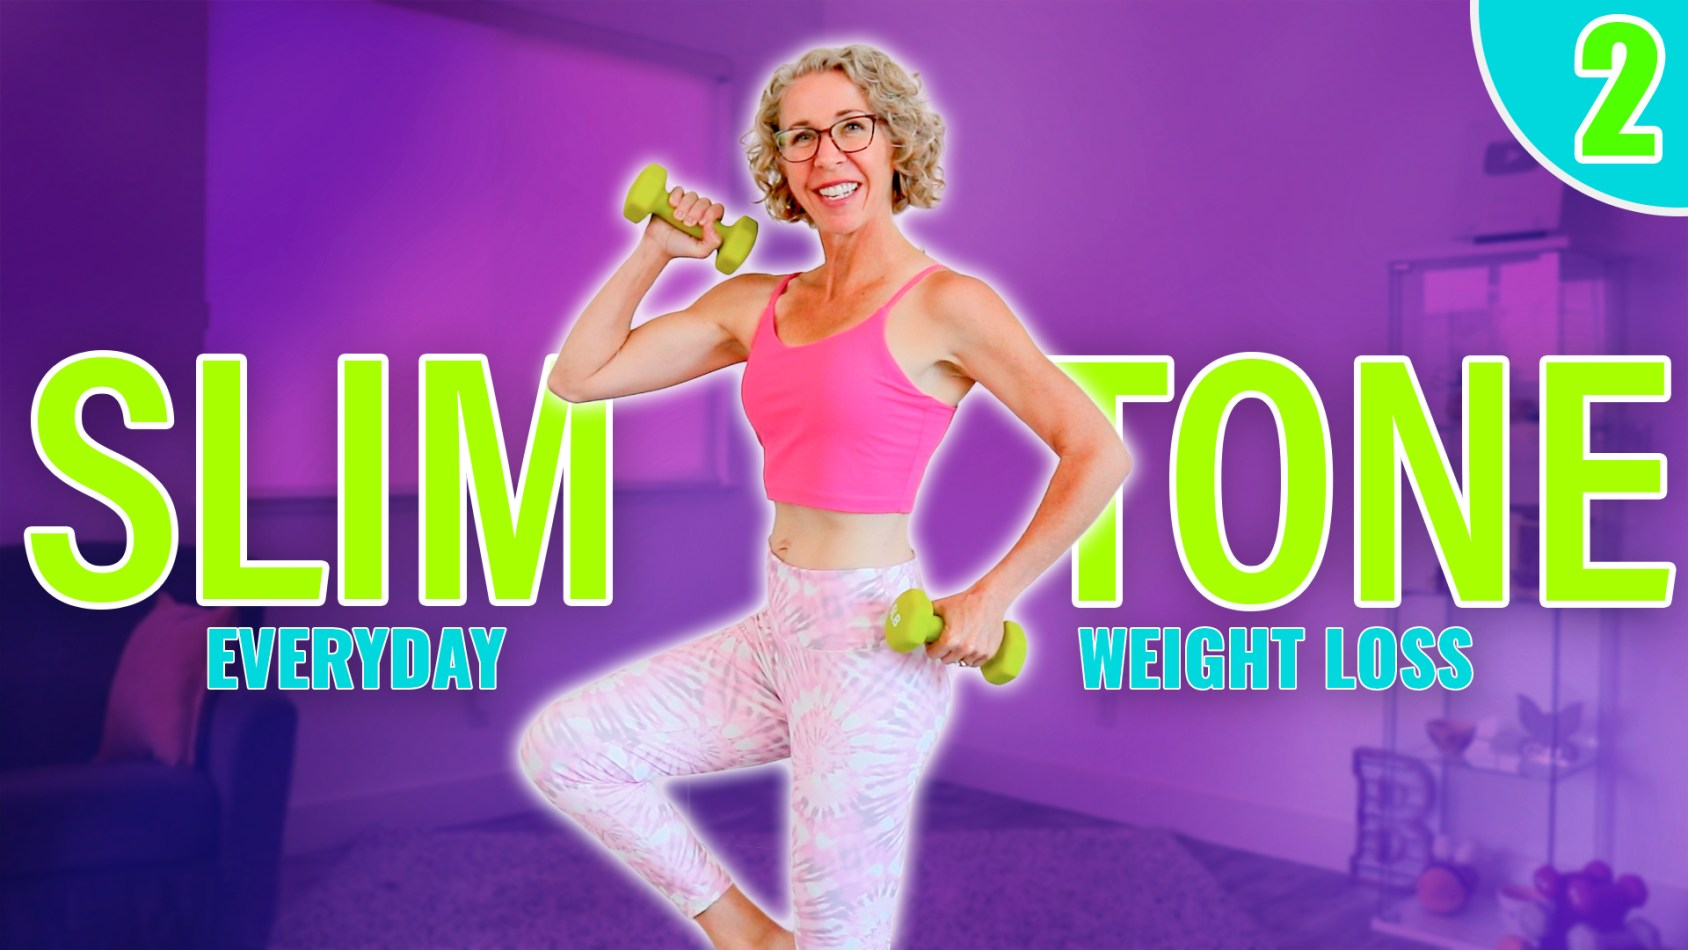 2️⃣ The BEST Total Body Workout! Fast, Efficient + Effective for Women over 50